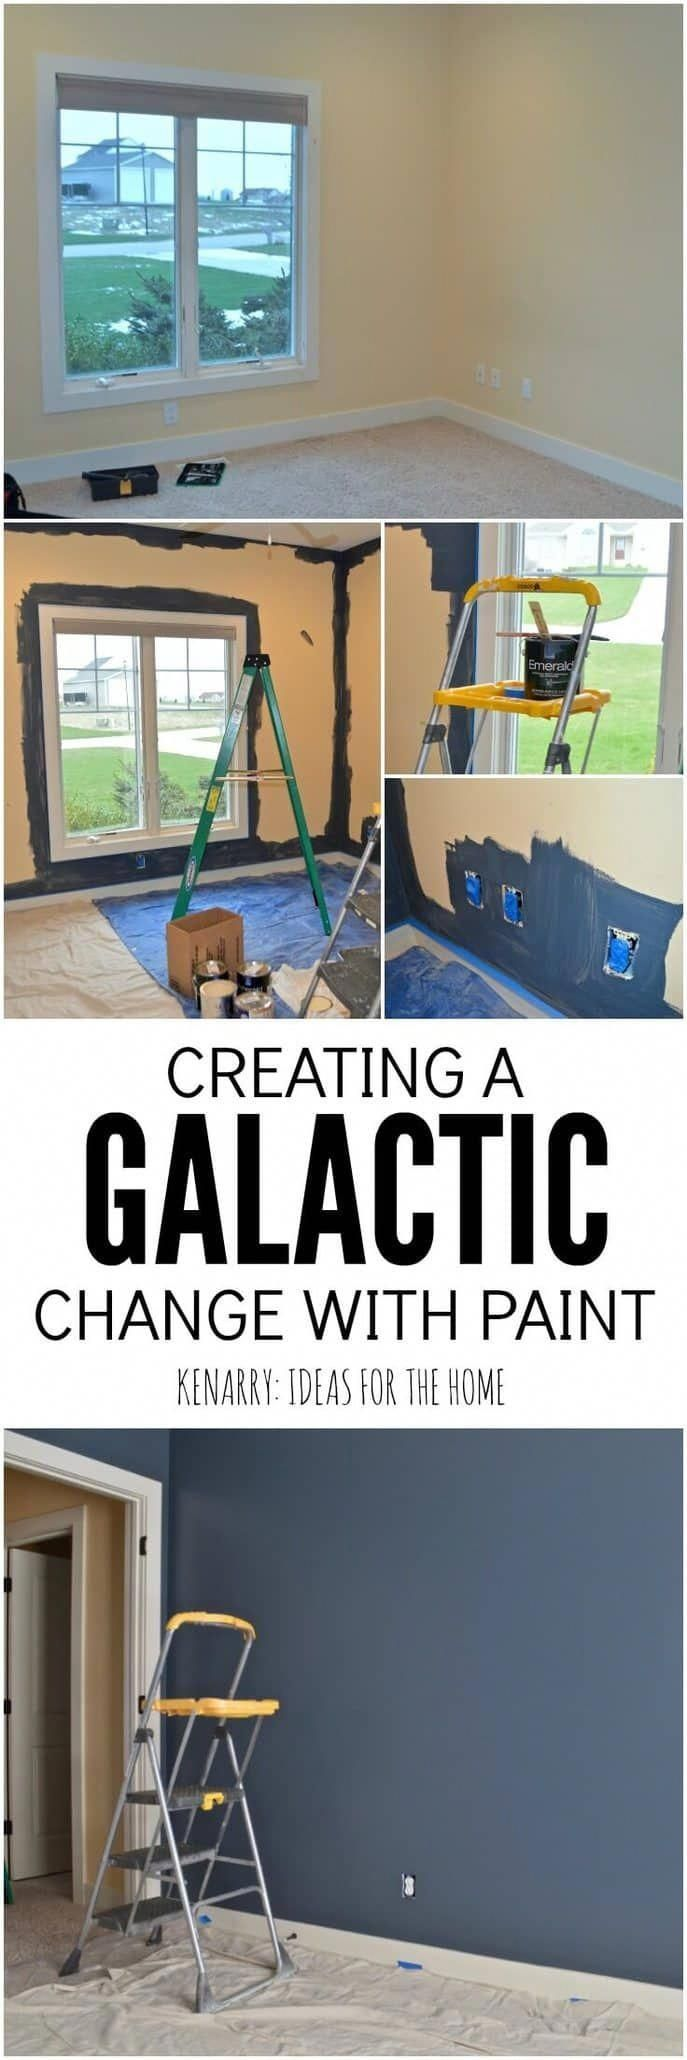 Creating an outer space boys bedroom starts with a huge galactic change in paint...  #Bedroom #Boys #change #Creating #galactic #Huge #outer #Paint #space #starts